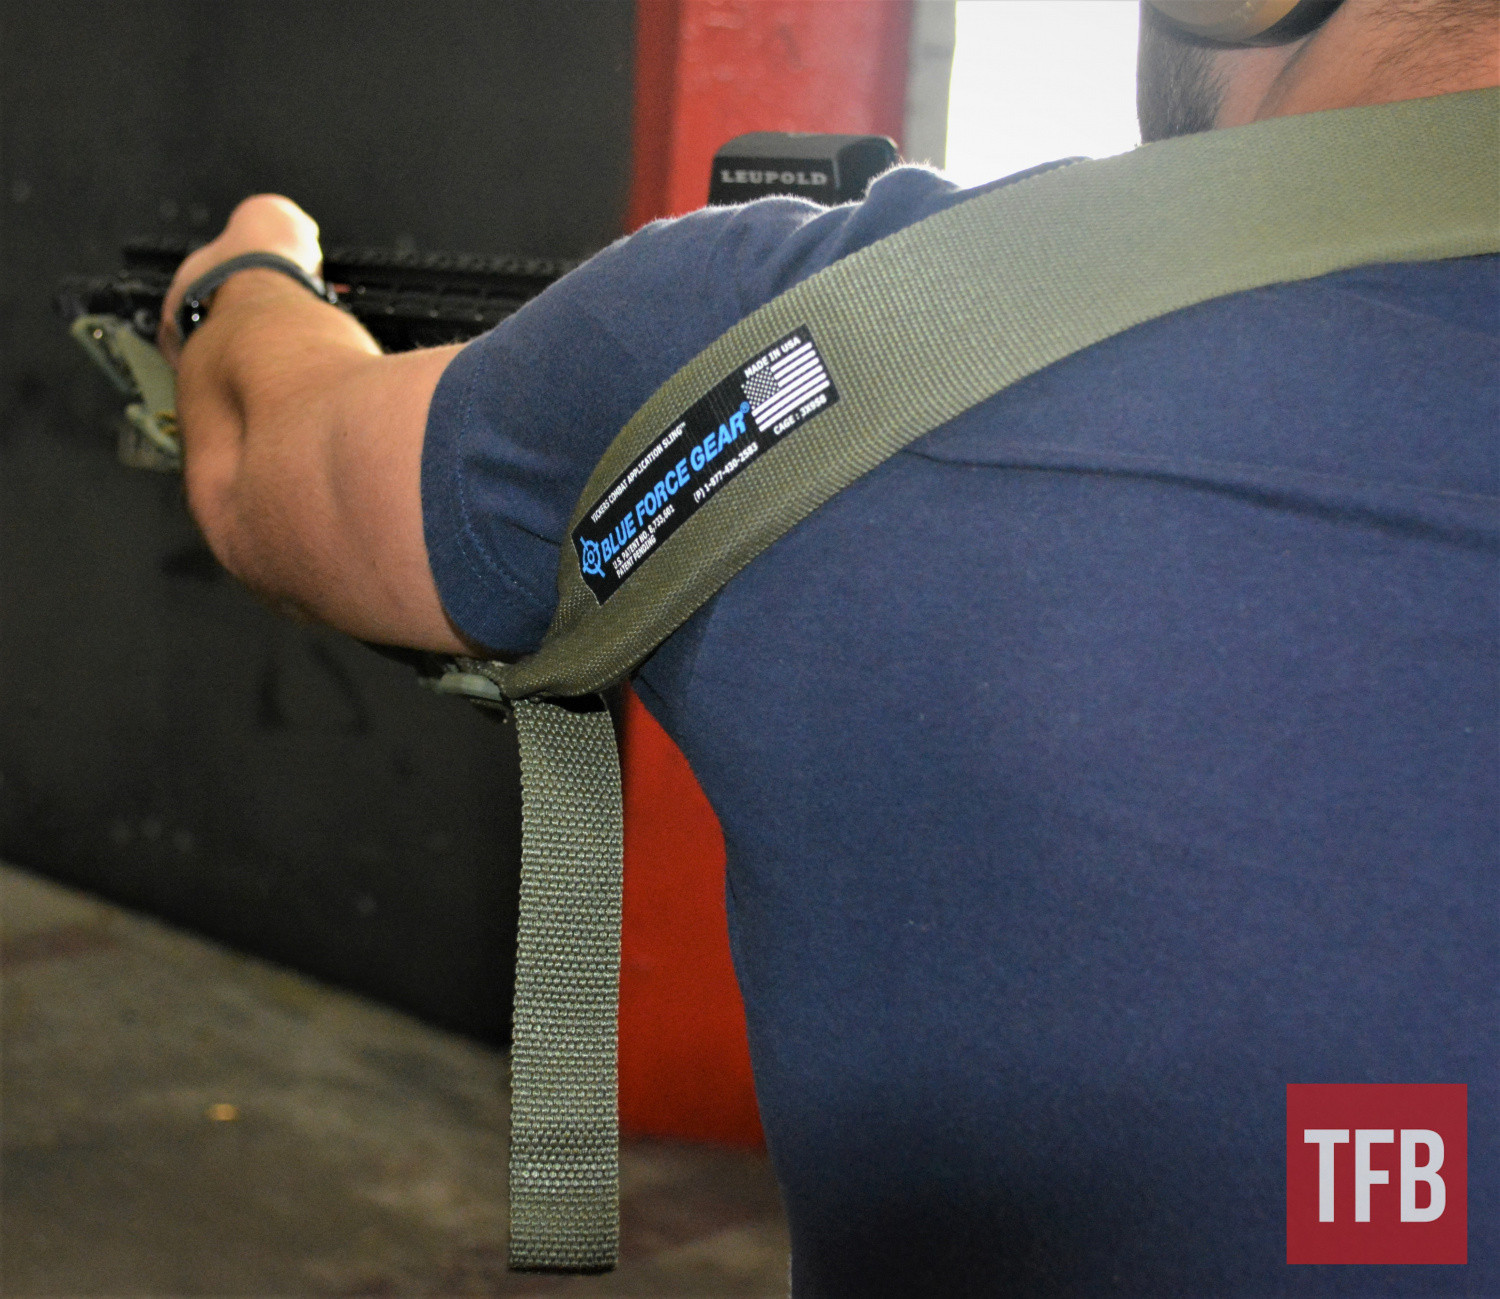 When is a sling more than a sling? When you understand how it can be leveraged as more than just a sort of holster for your long gun.